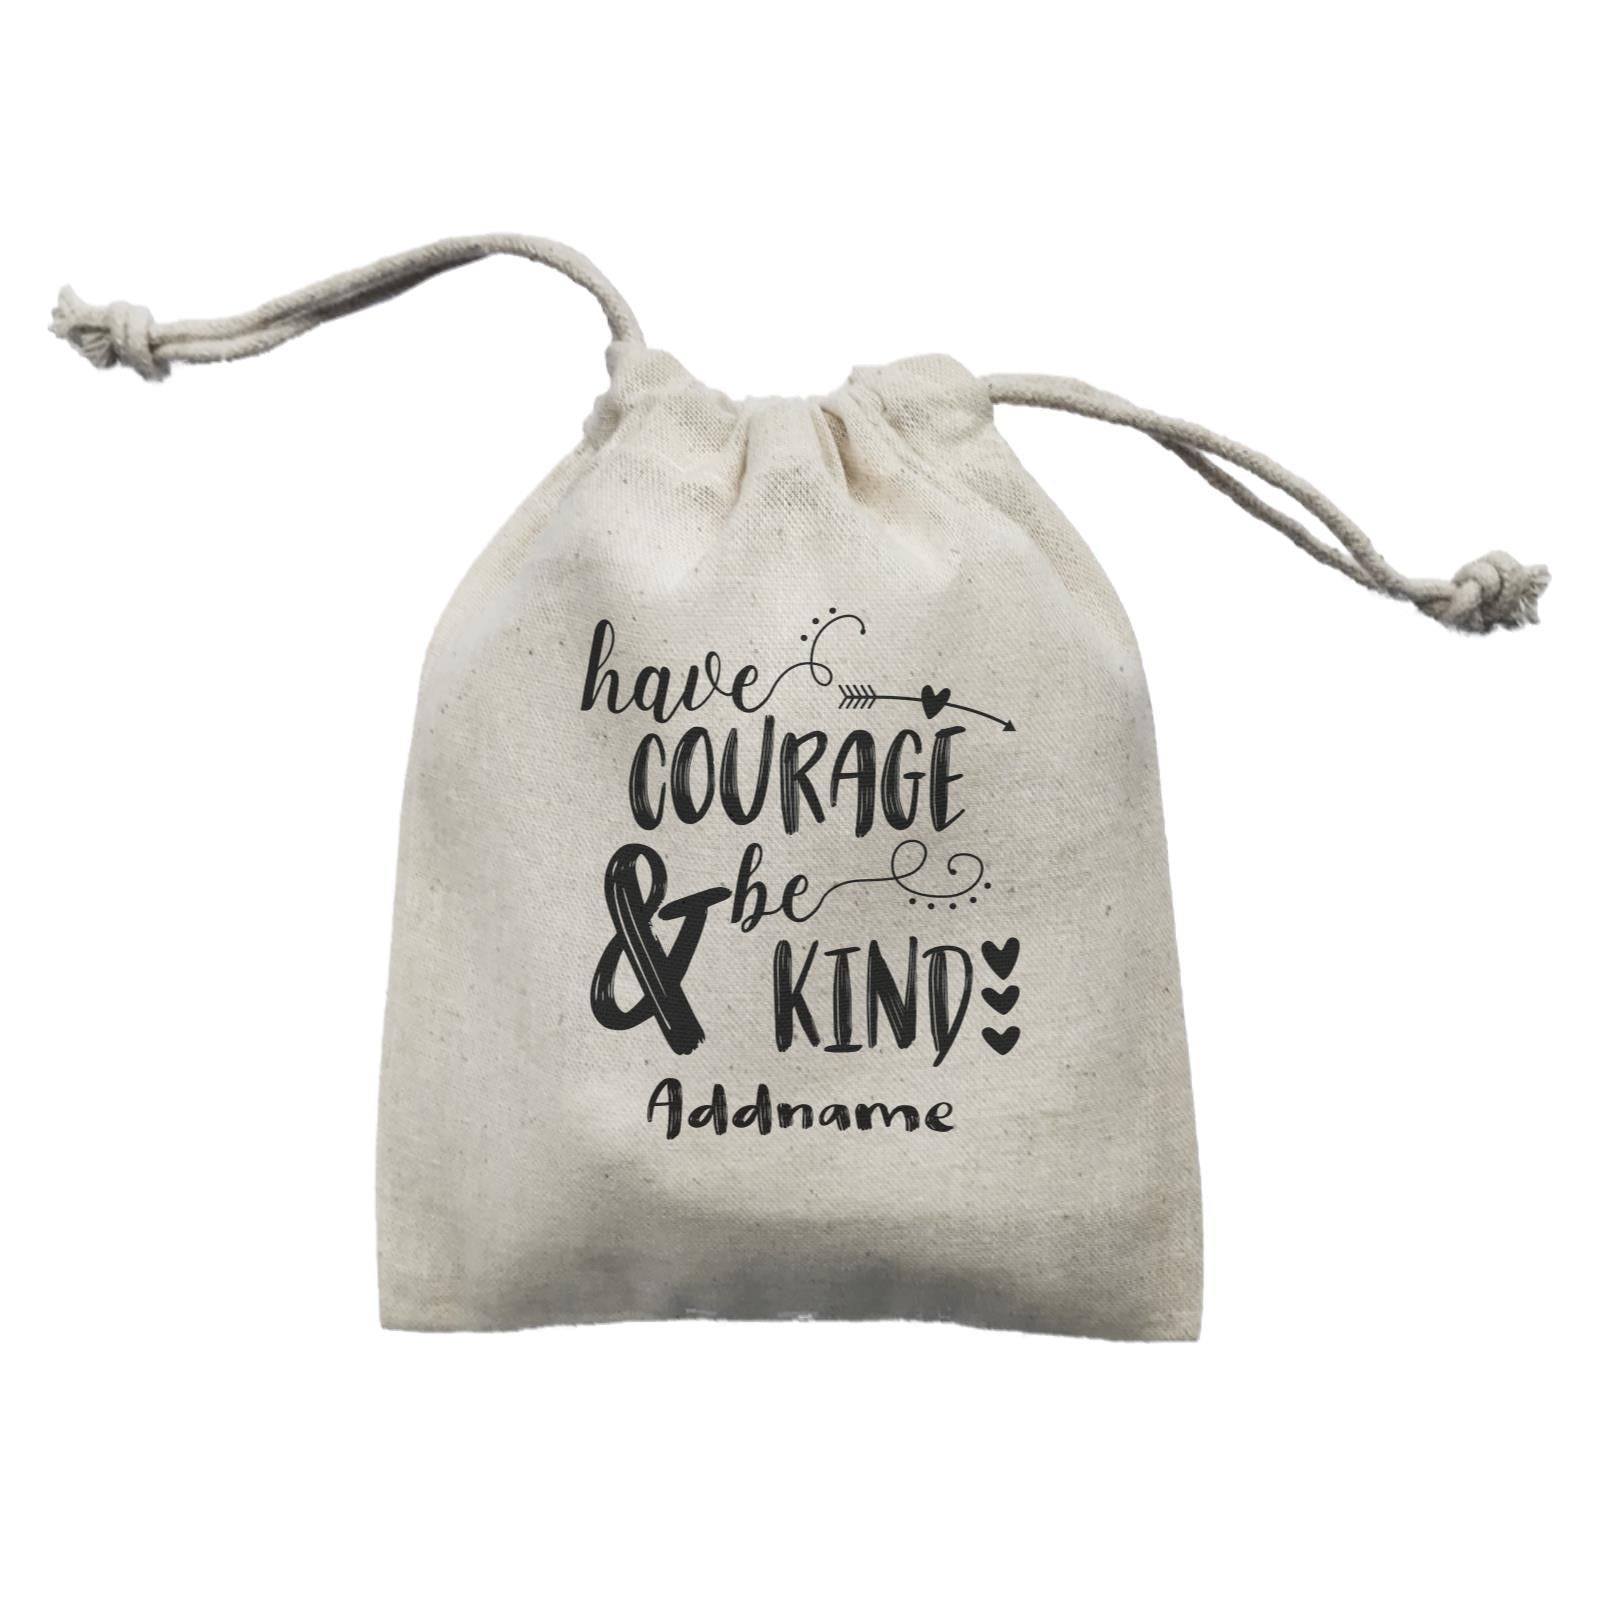 Inspiration Quotes Have Courage And Be Kind Addname Mini Accessories Mini Pouch